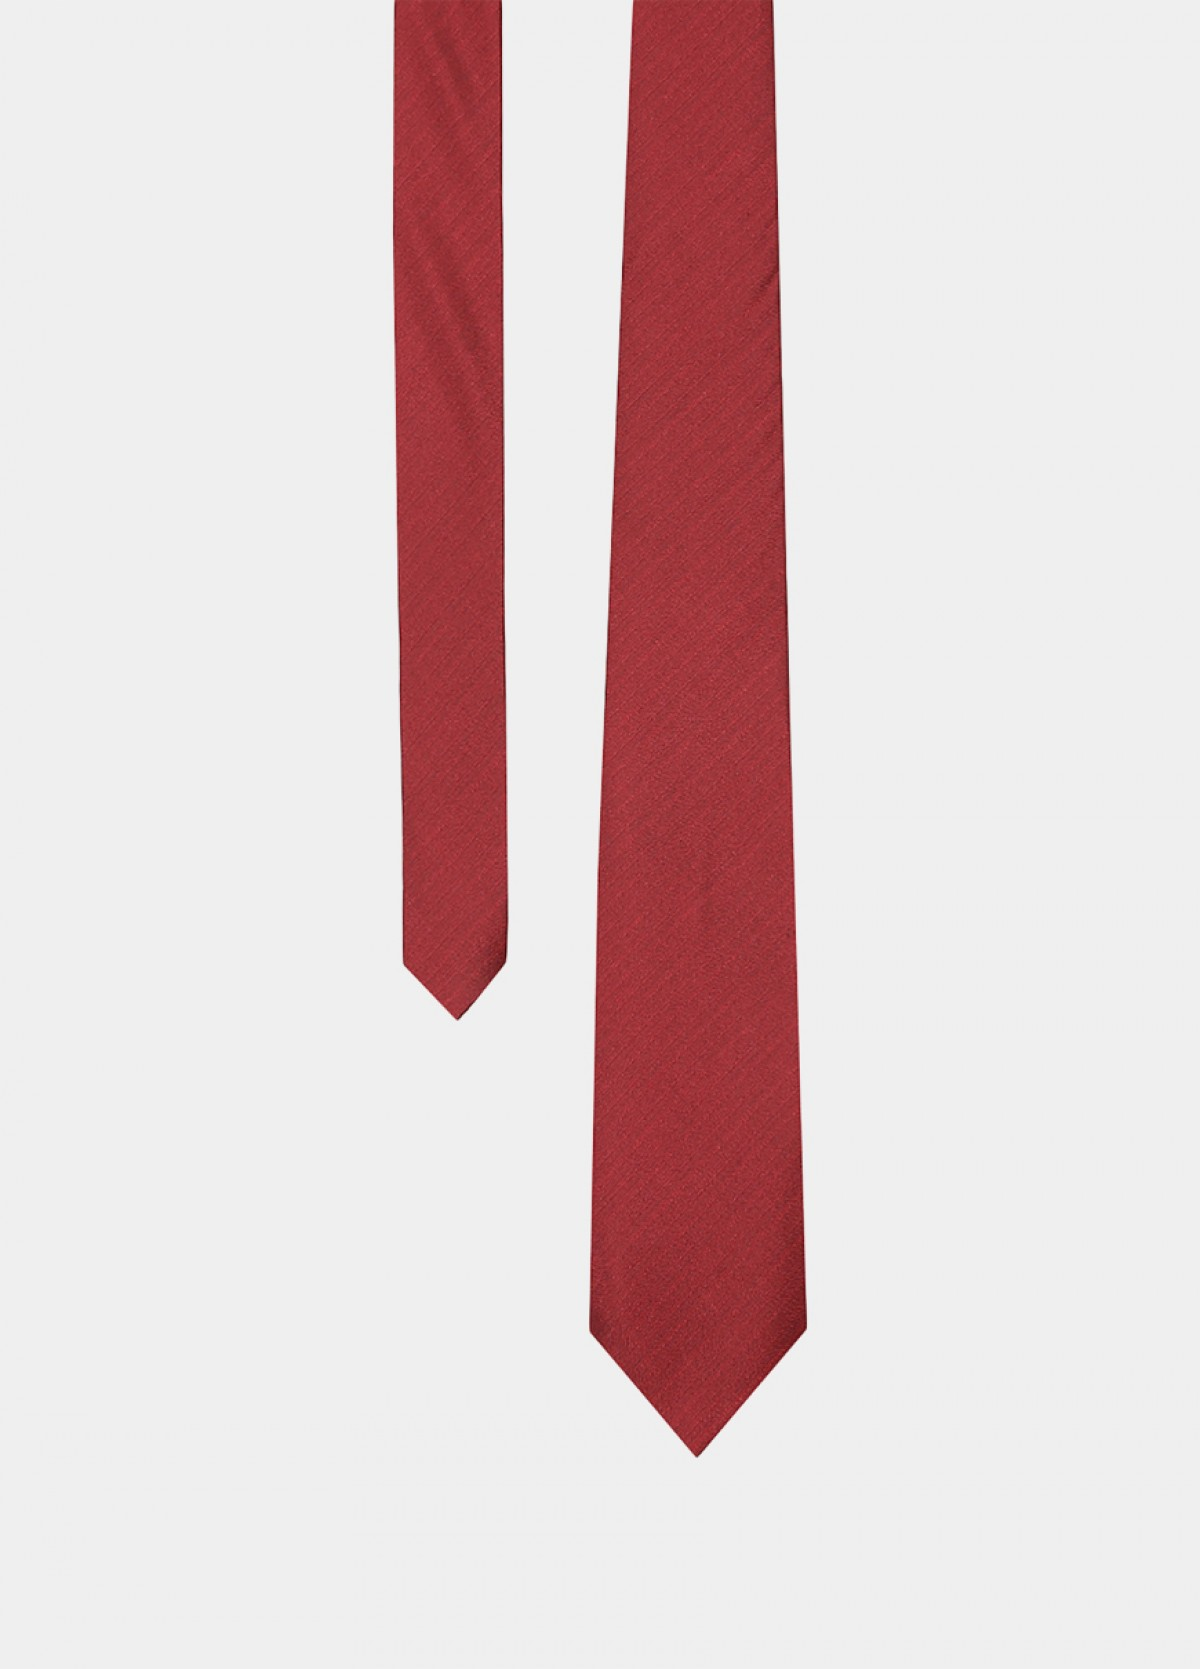 The Brown Stain Resistant Tie